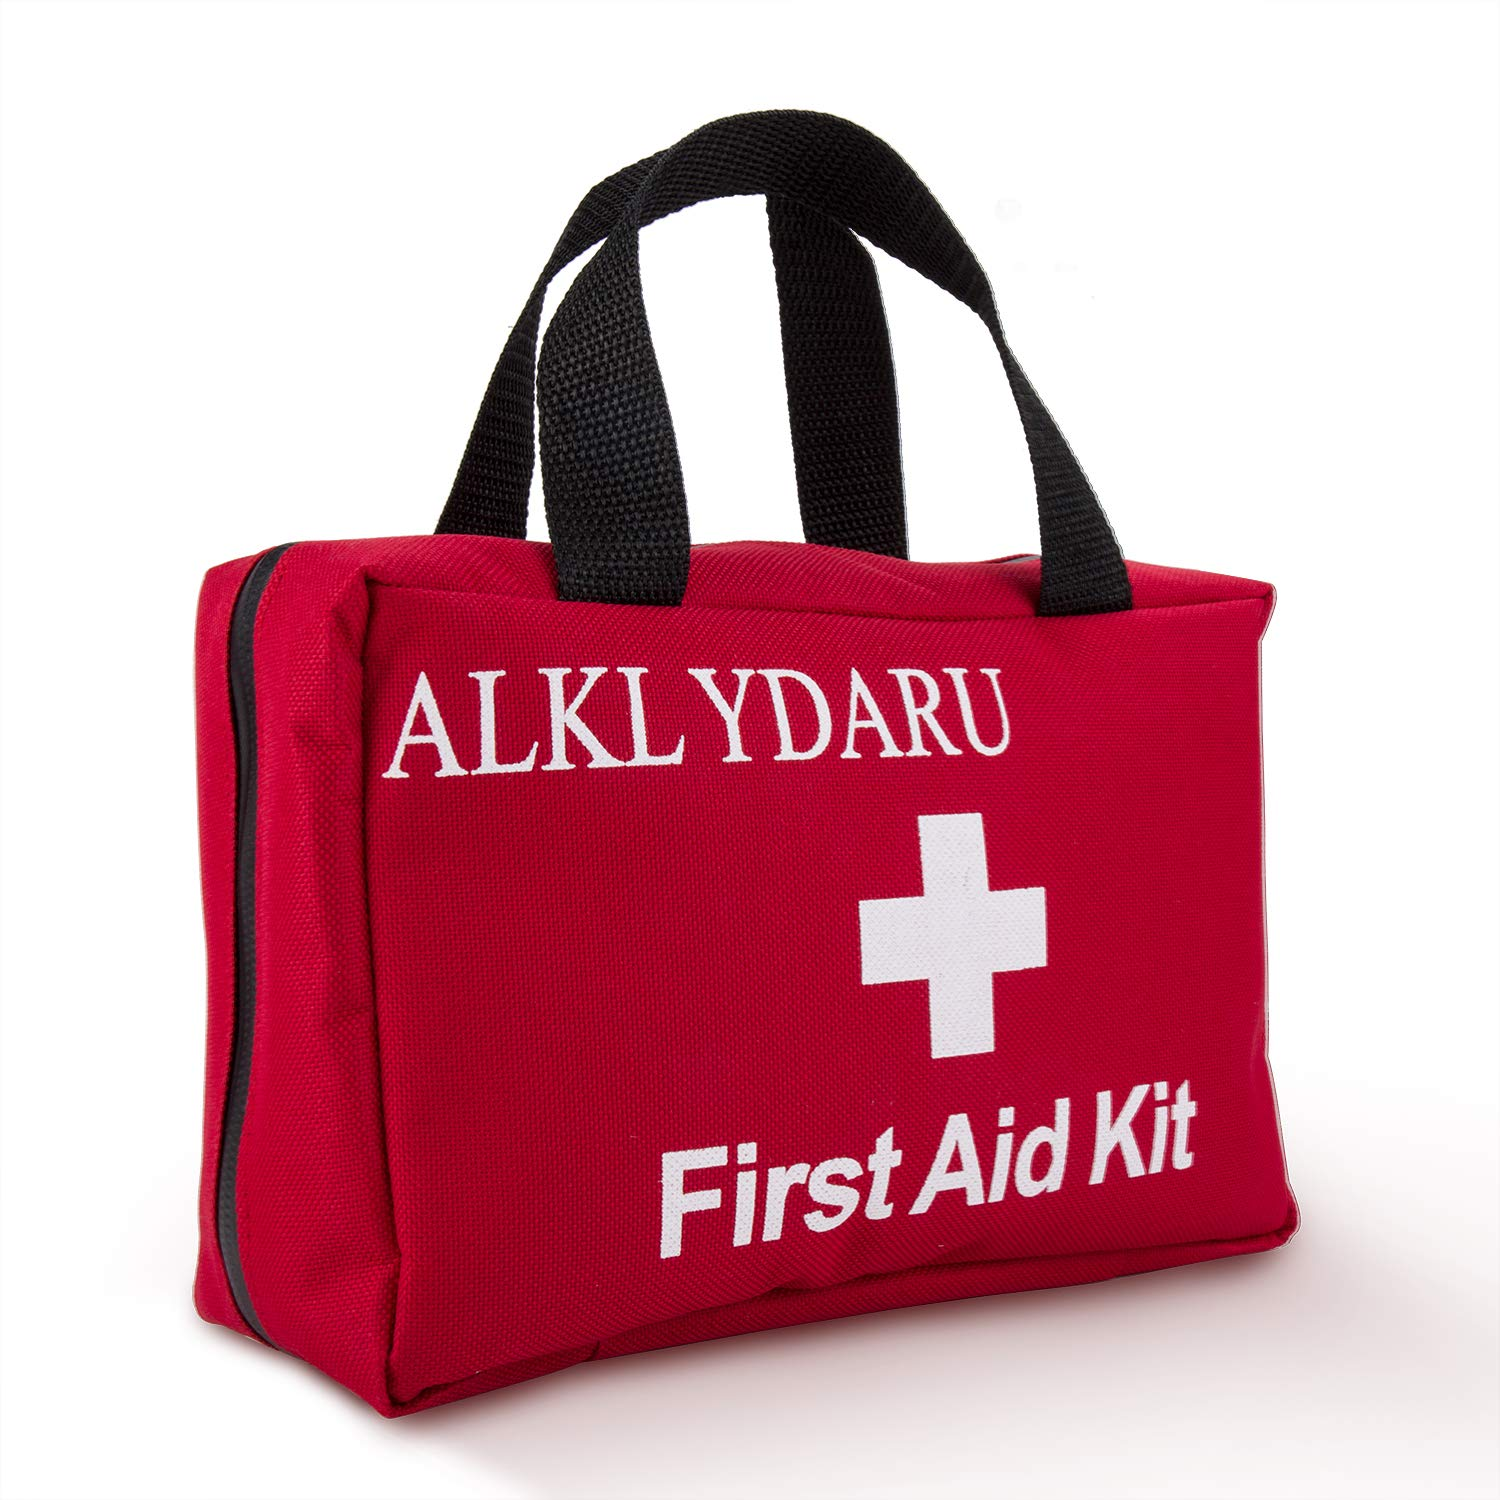 ALKLYDARU Small First Aid Kit, Using Waterproof Polyester, Waterproof Zipper and Long Band Aid, is Suitable for Cars, Home, Camping, Hiking, Office, Cycling and Hunting.